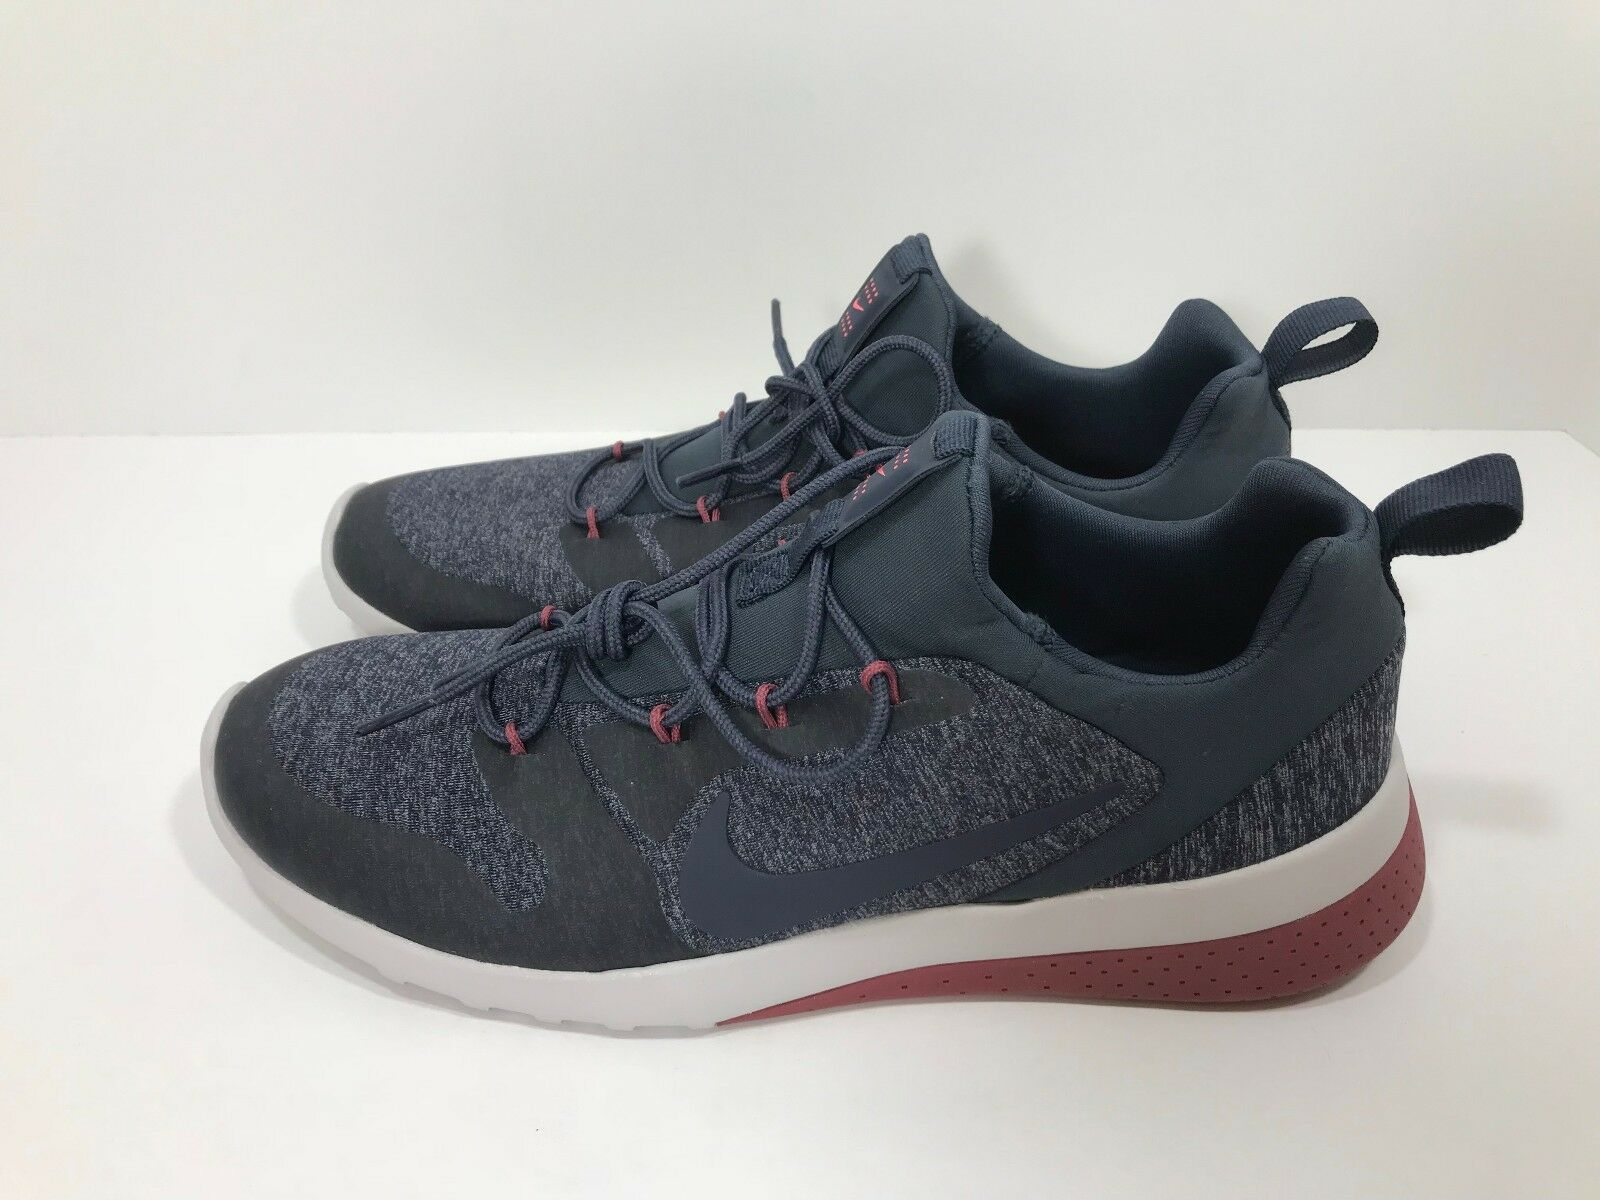 *New* Nike CK Racer Men's Comfortable Comfortable and good-looking